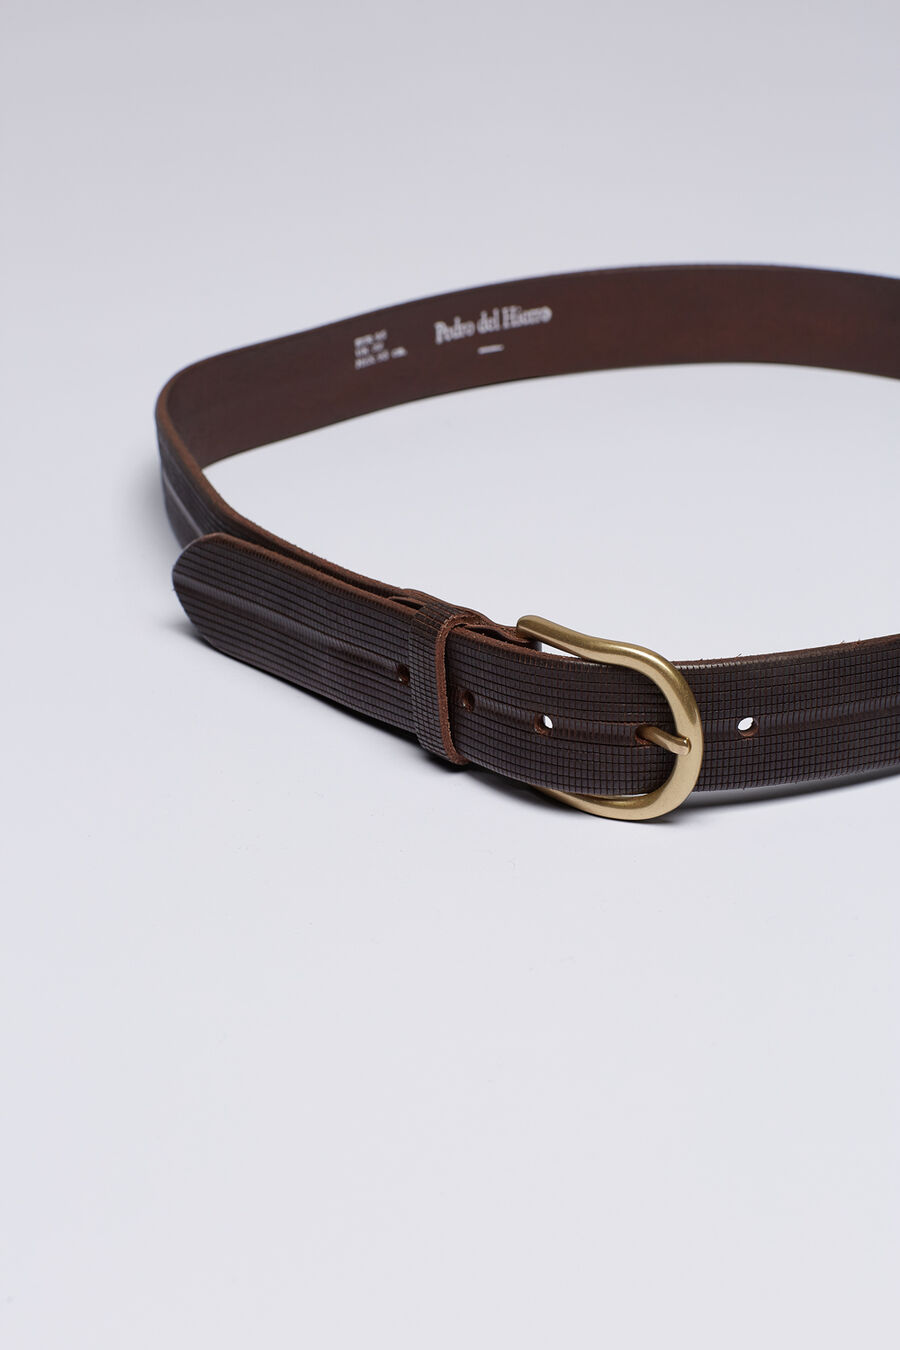 Casual engraved belt